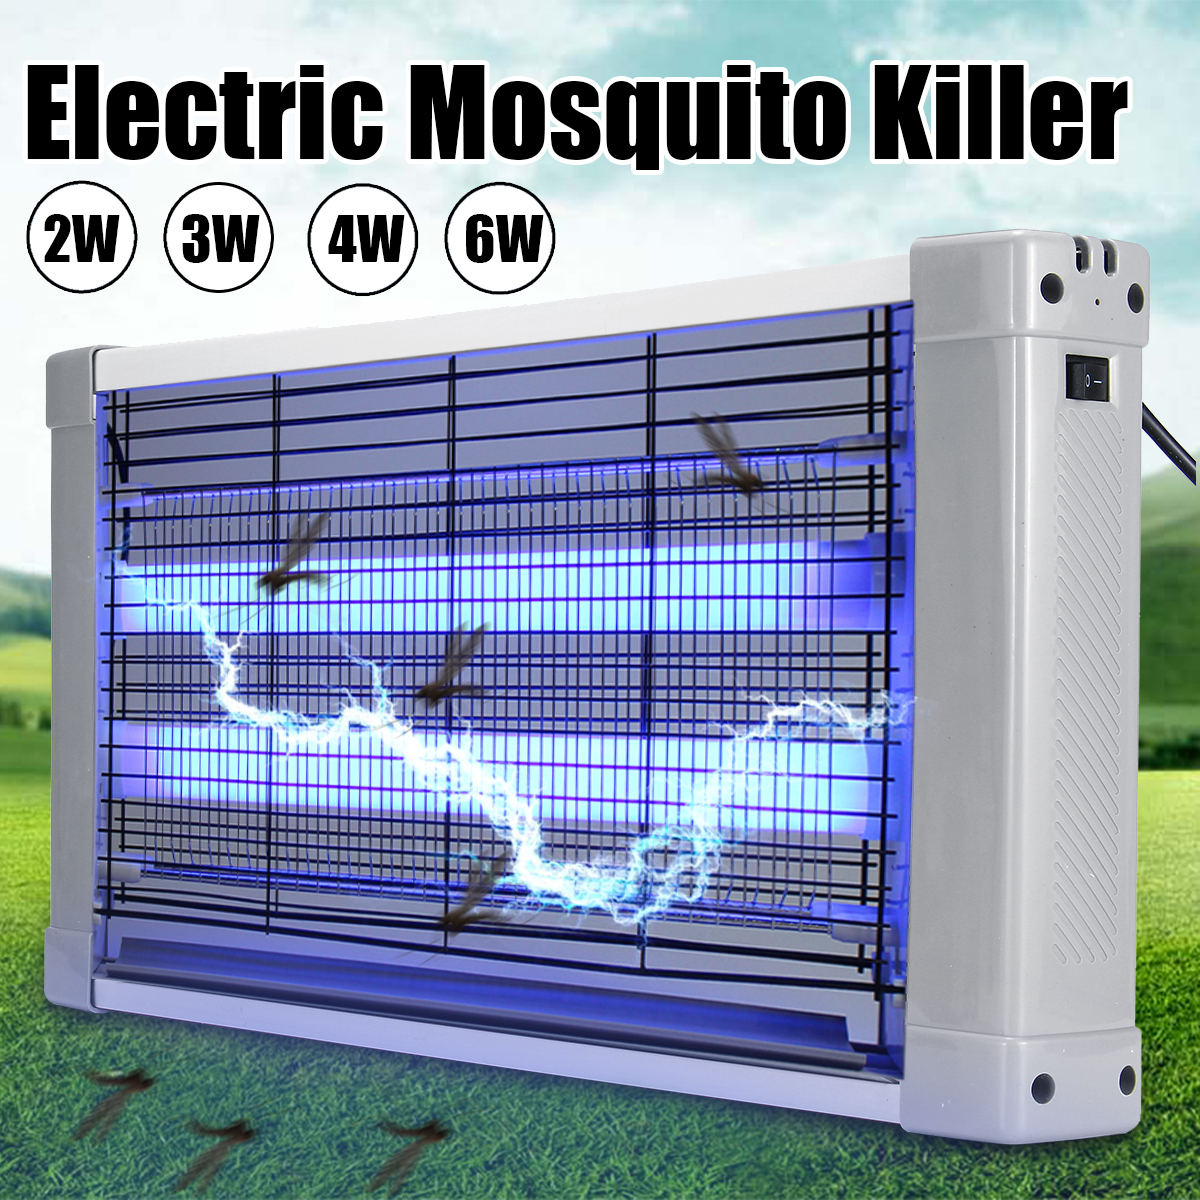 2/3/4/6W LED Mosquito Killer Lamp Electric Fly Zapper Trap Bug Zapper Killer Catcher Insects Bug Pests Electronic Pests Control UV-A Aluminium